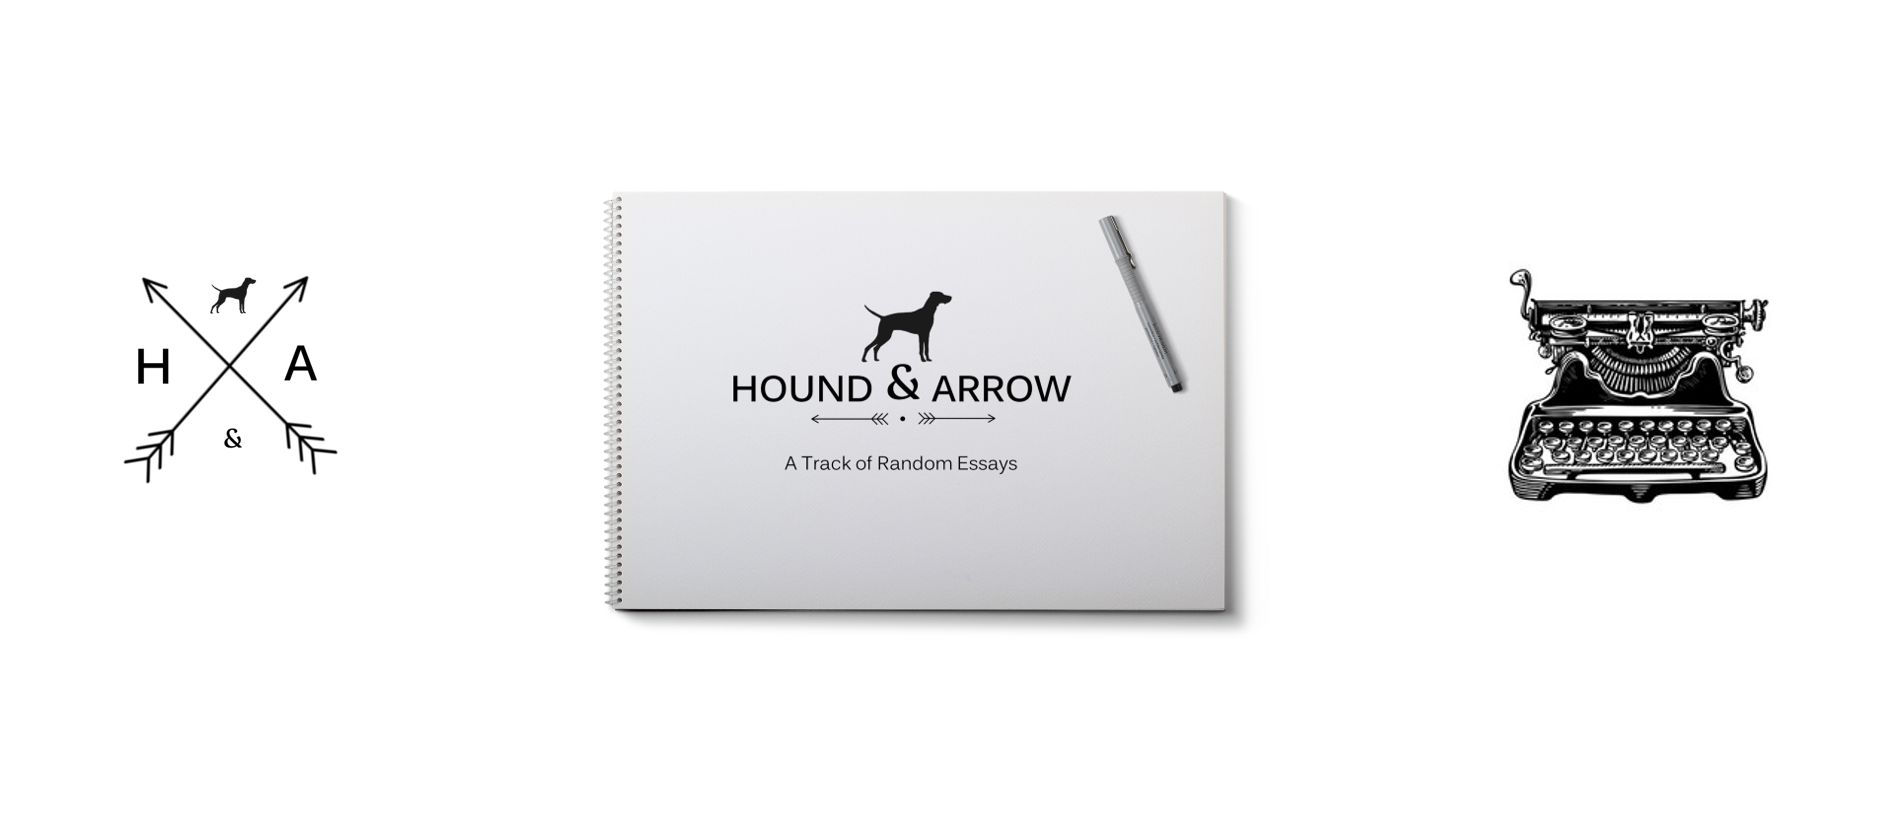 HOUND AND ARROW